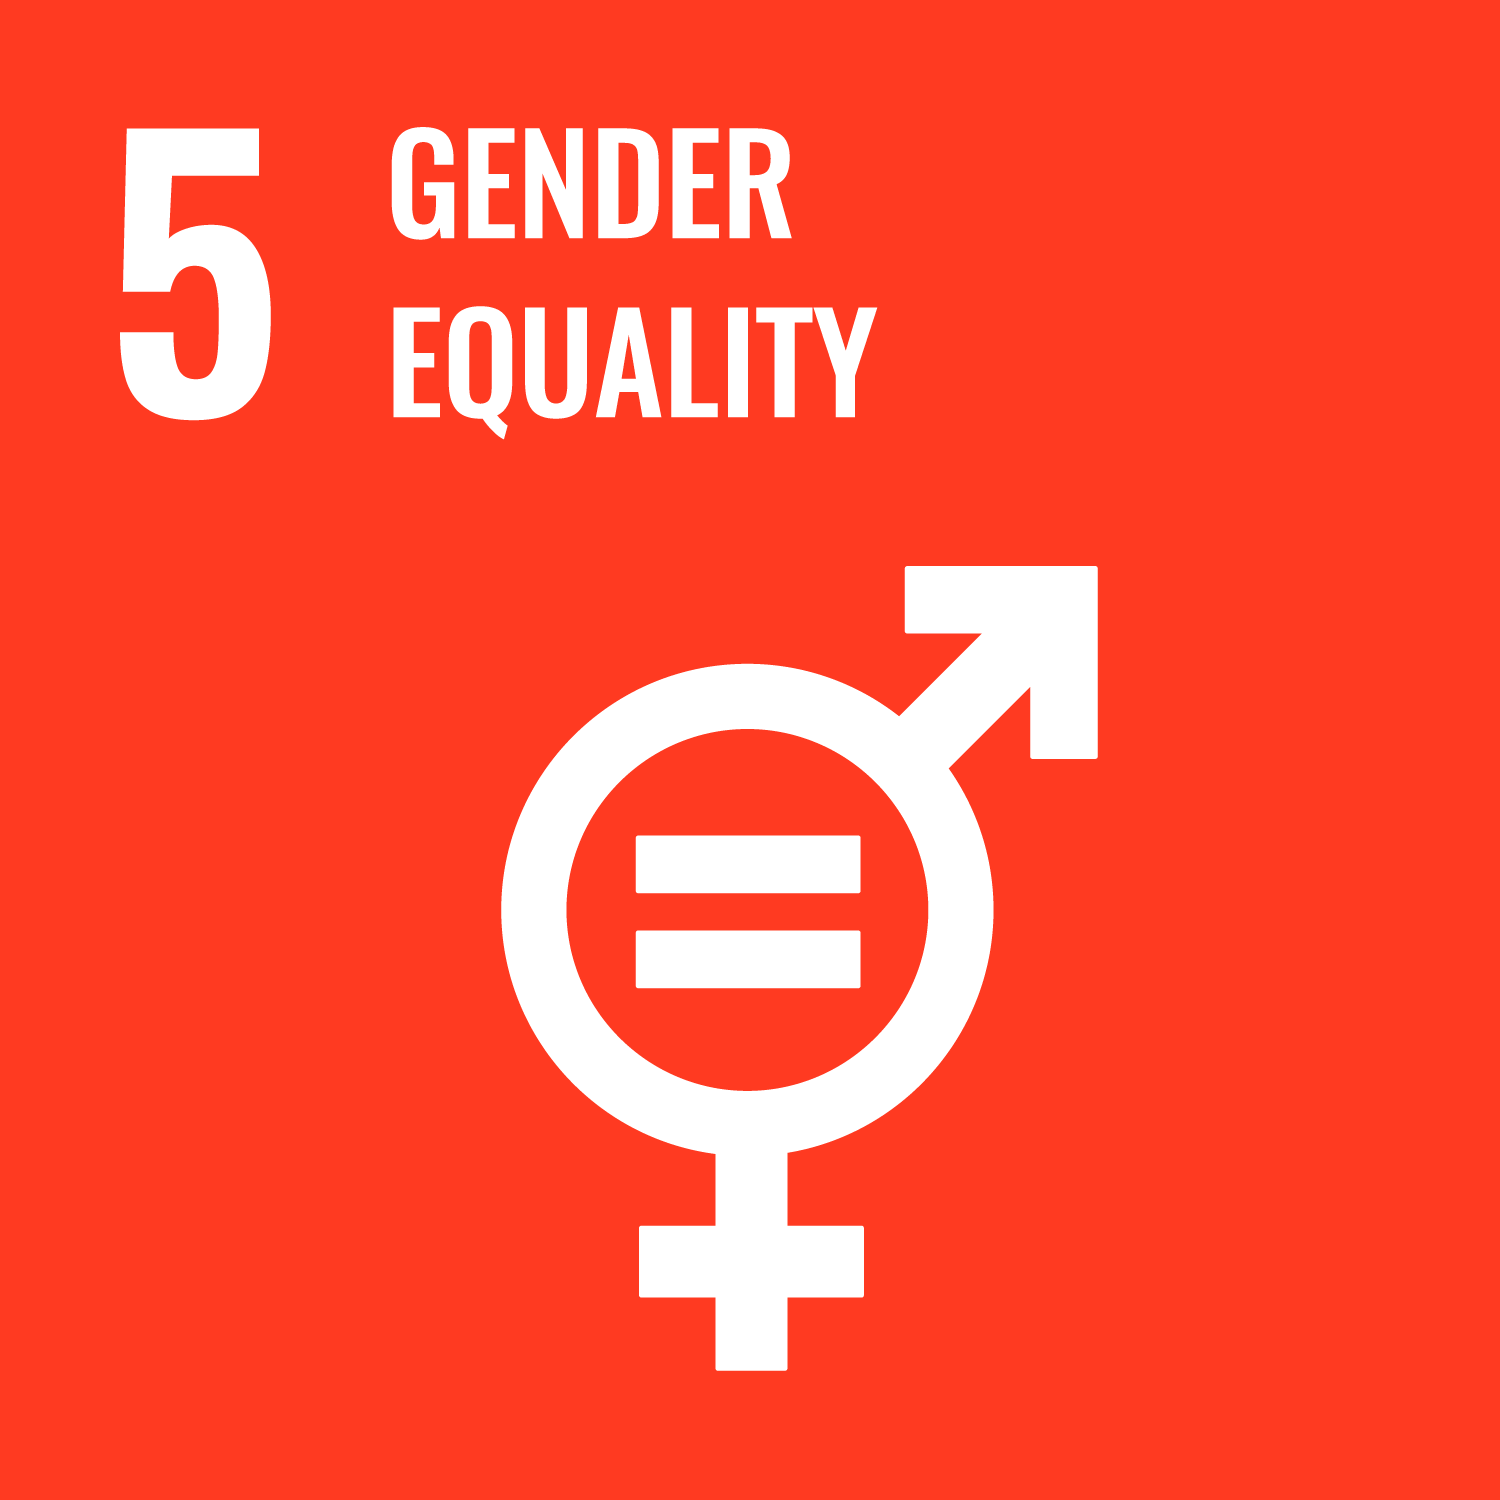 Logo featuring gender equality